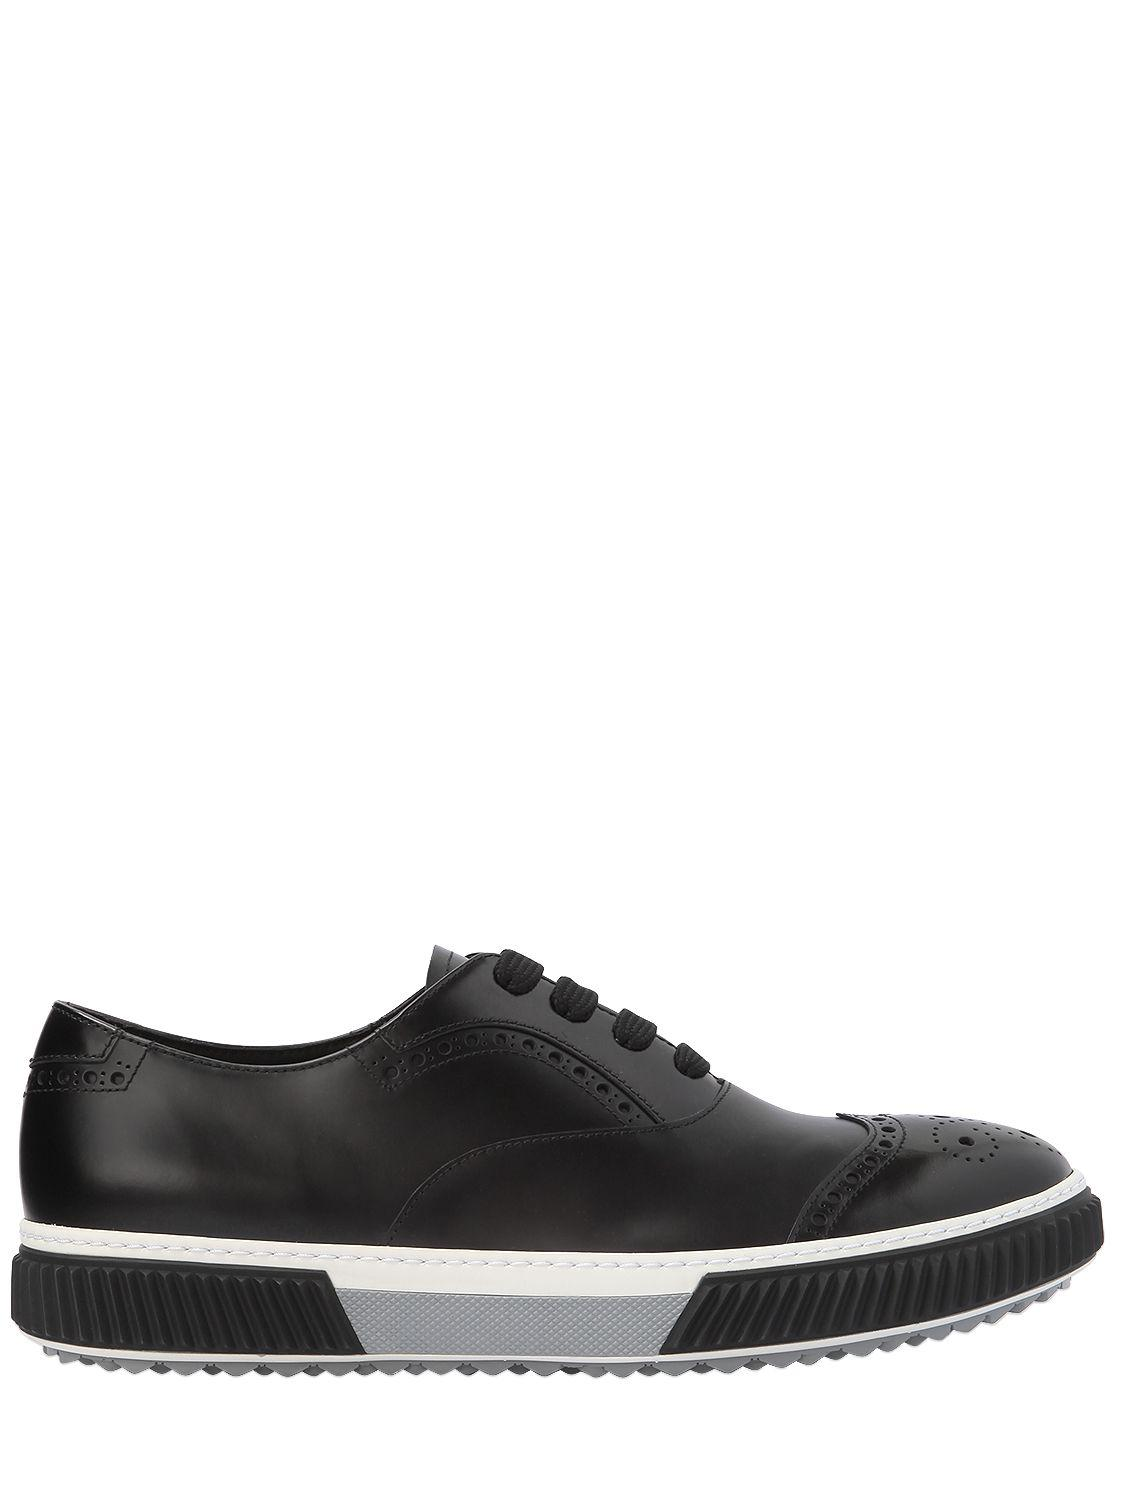 Prada 12MM LEATHER OXFORD LACE-UP SHOES